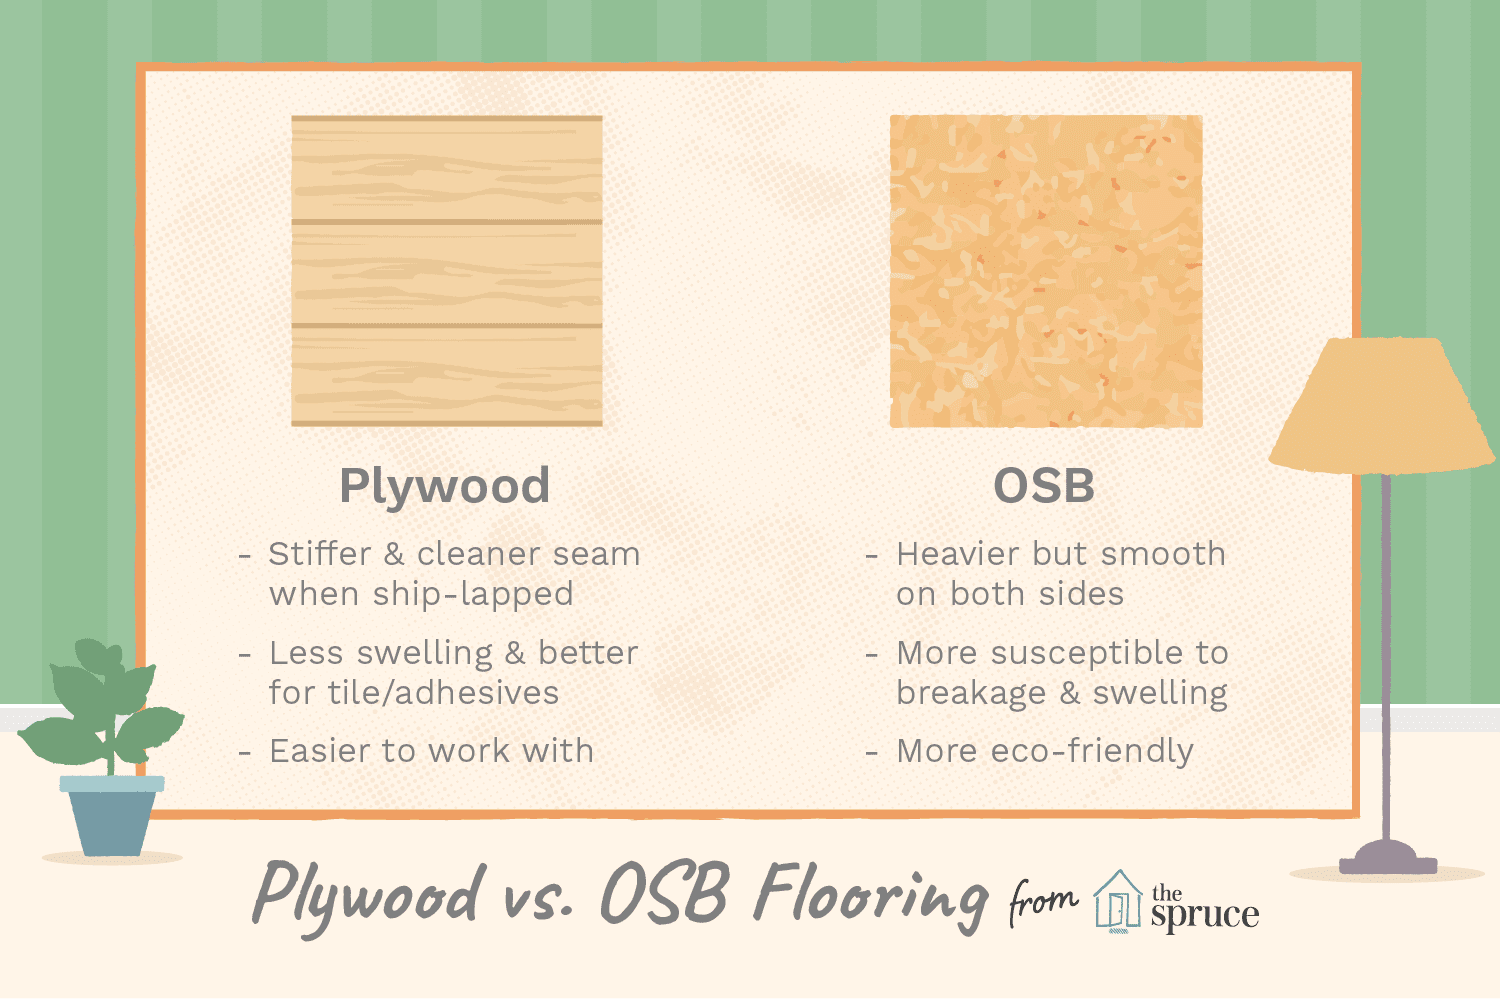 Plywood or OSB for Flooring?